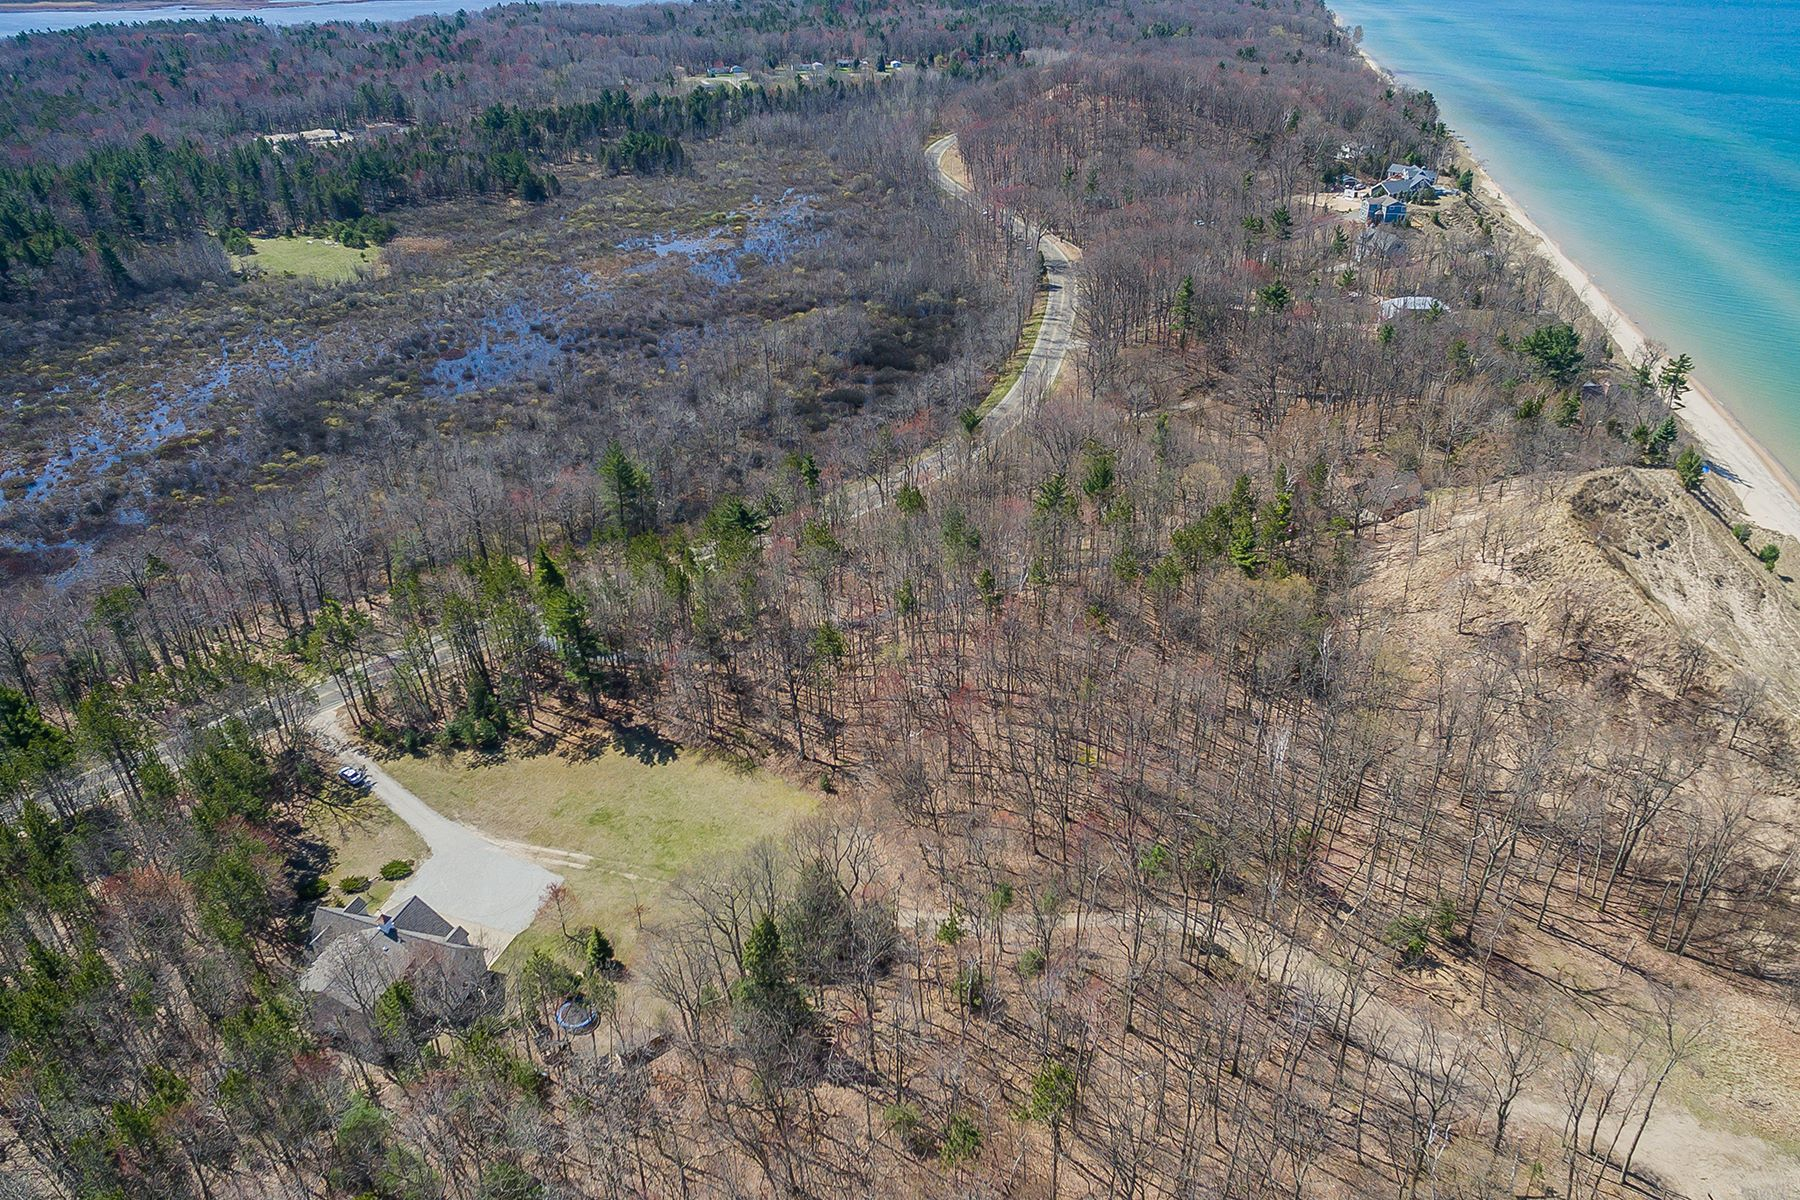 Land for Sale at Serene Lakeshore Property 4500 Lakeshore Road Lot 5 Manistee, Michigan 49660 United States